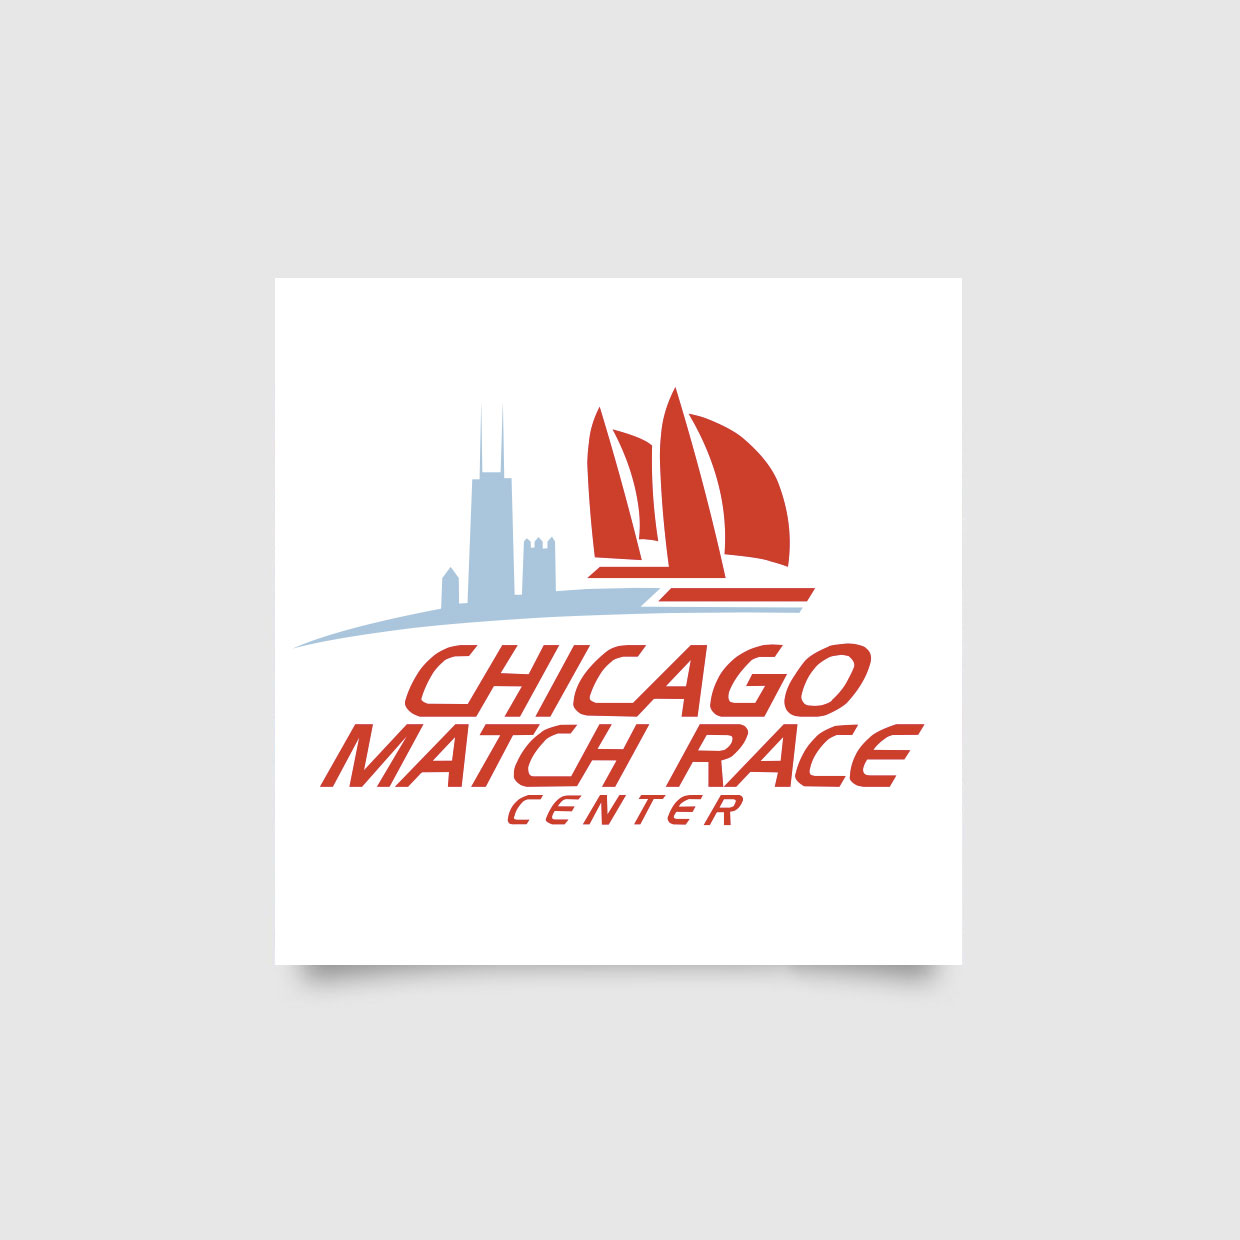 Chicago Match Race Center Brand Style Guide